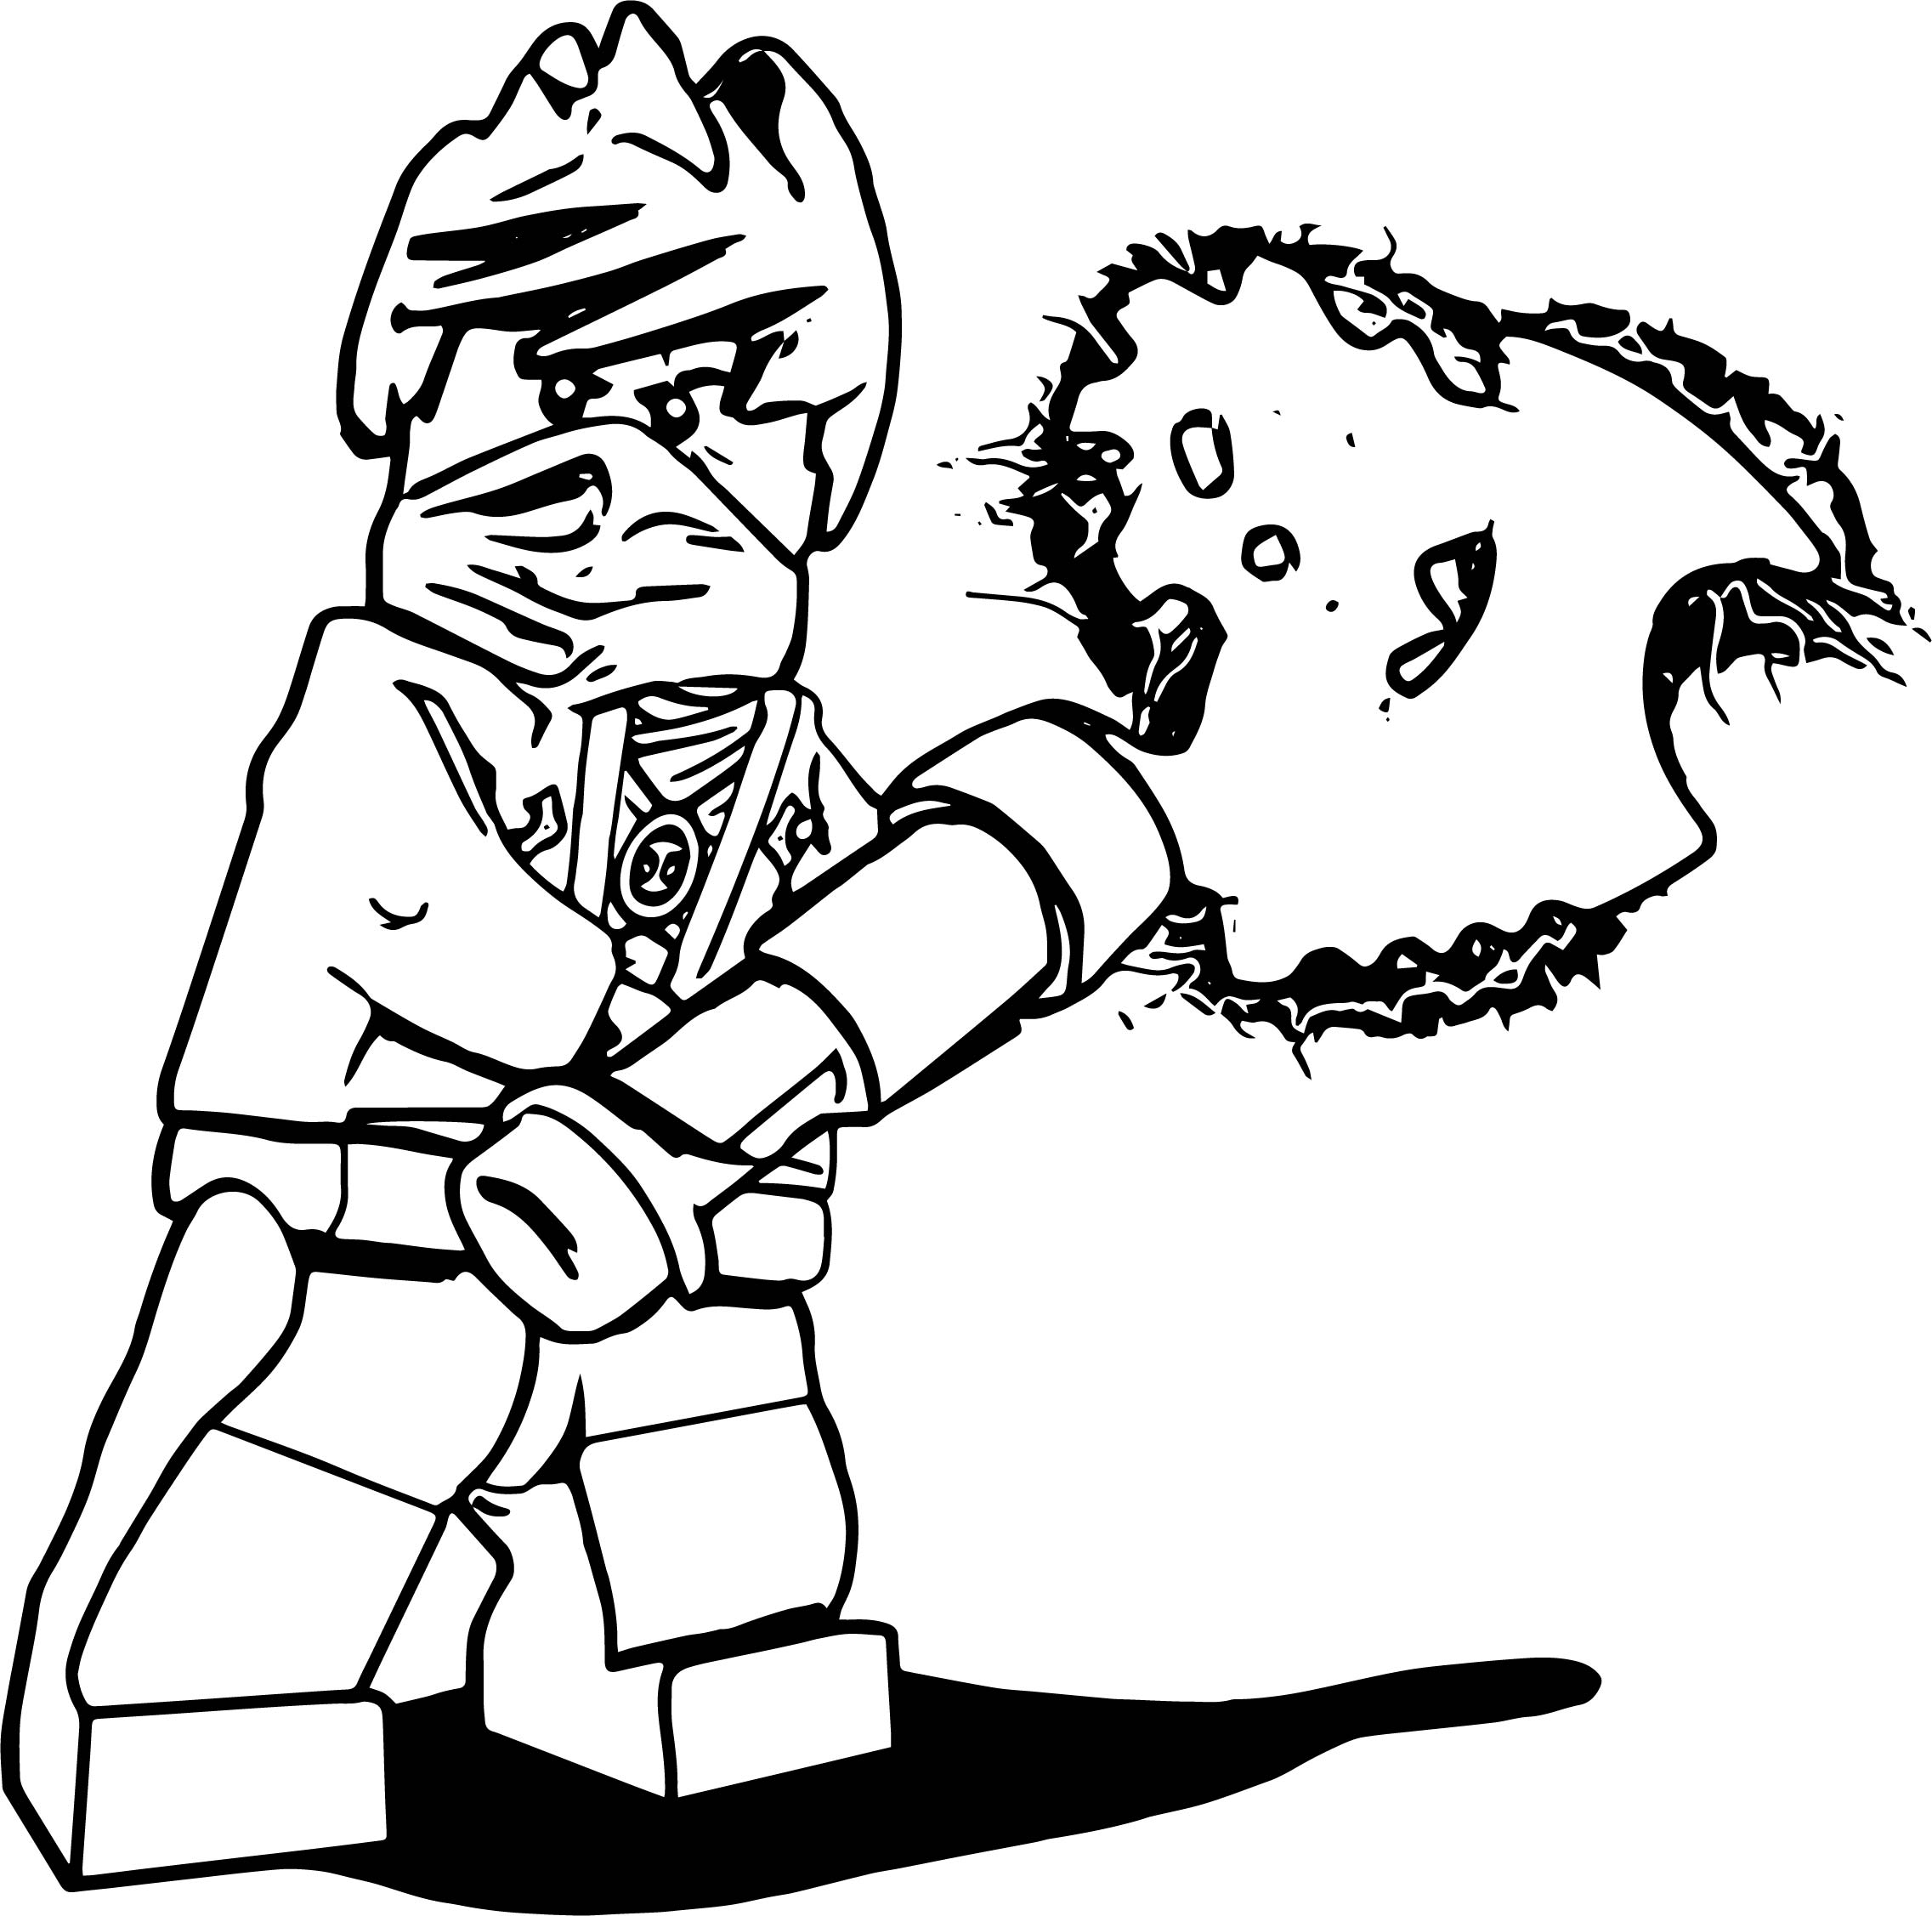 Coloring Page Of Bat And Ball likewise Free Coloring Pages Pac Man in addition Poseidon Coloring Page in addition Ninjago Kai Coloring Page furthermore Ausmalbilder Ninjago Drucken. on lego movie coloring pages